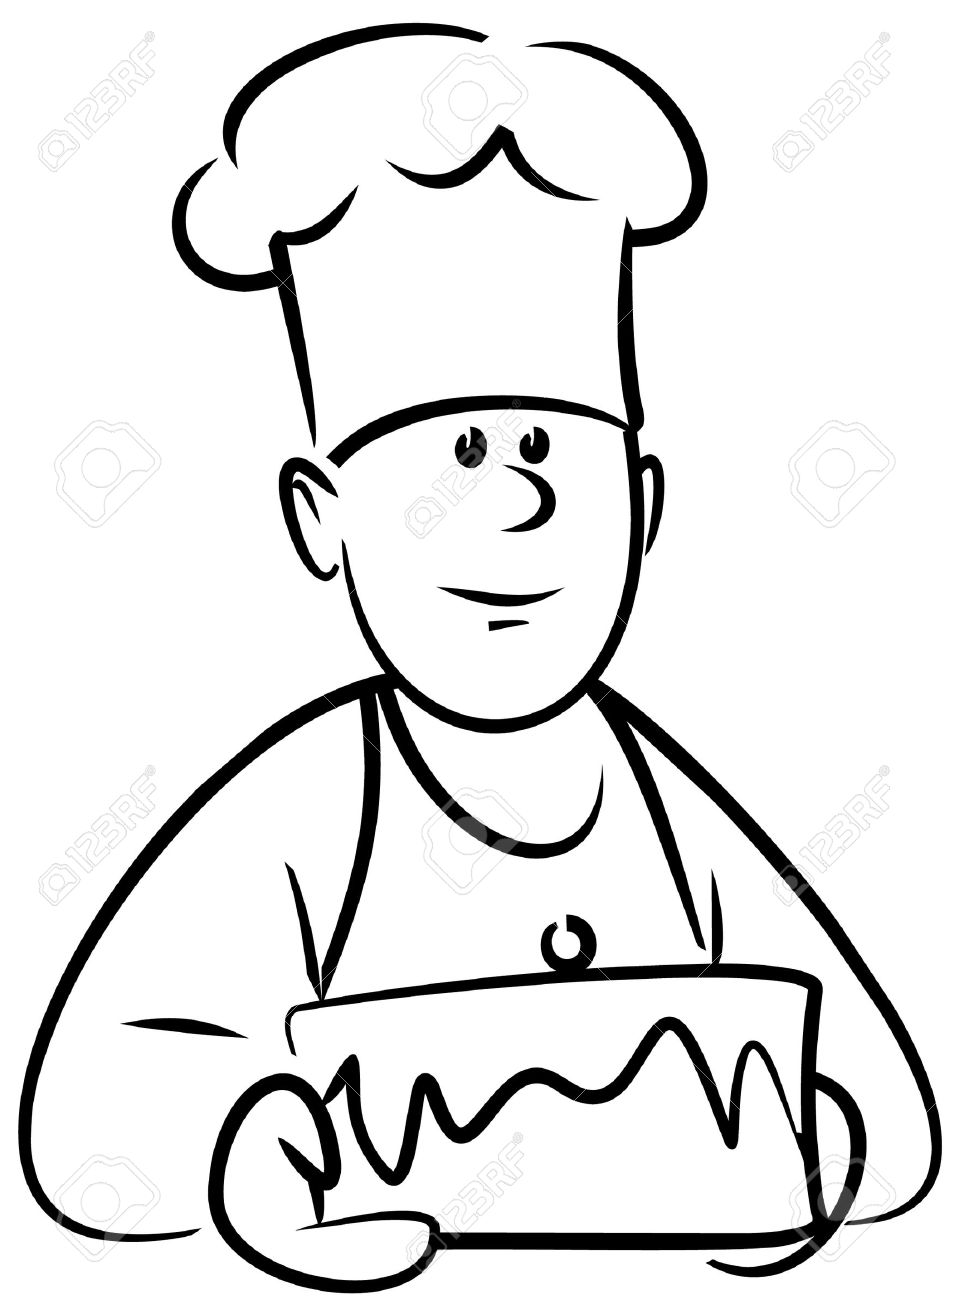 959x1300 Bakery Drawing Free Download